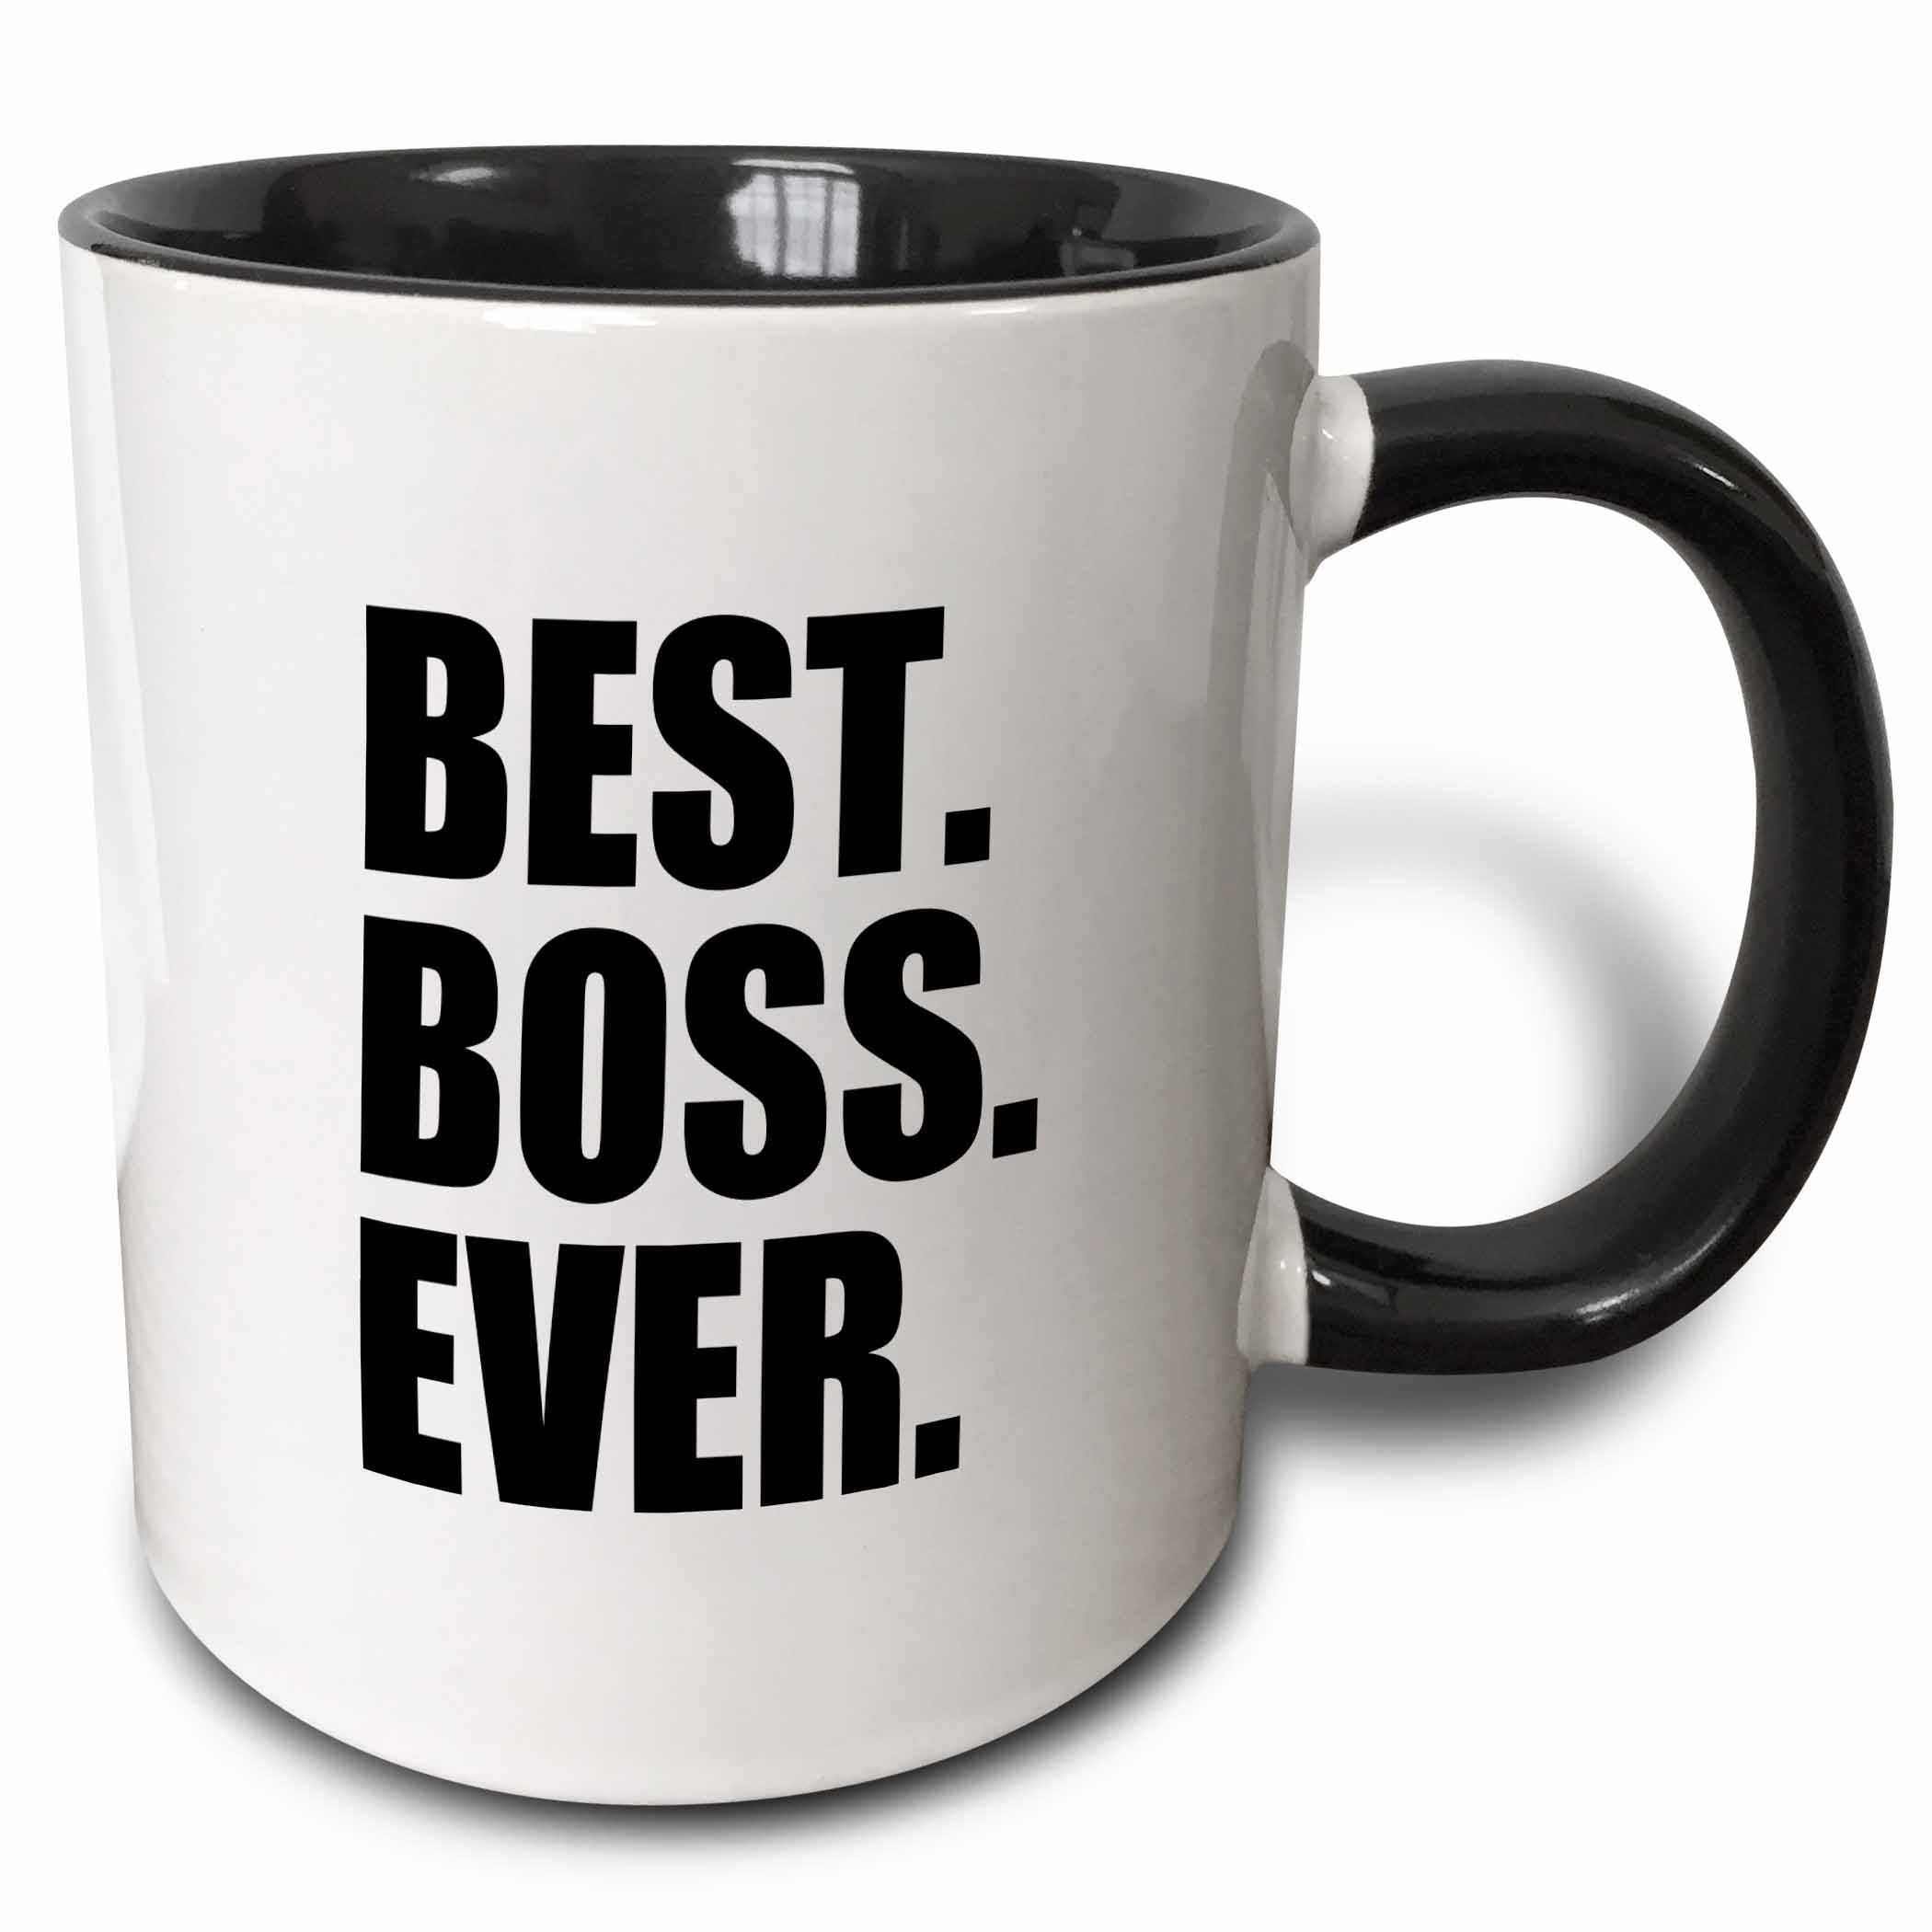 3dRose Best Boss Ever - fun funny humorous gifts for the boss - work office humor - black text, Two Tone Black Mug, 11oz